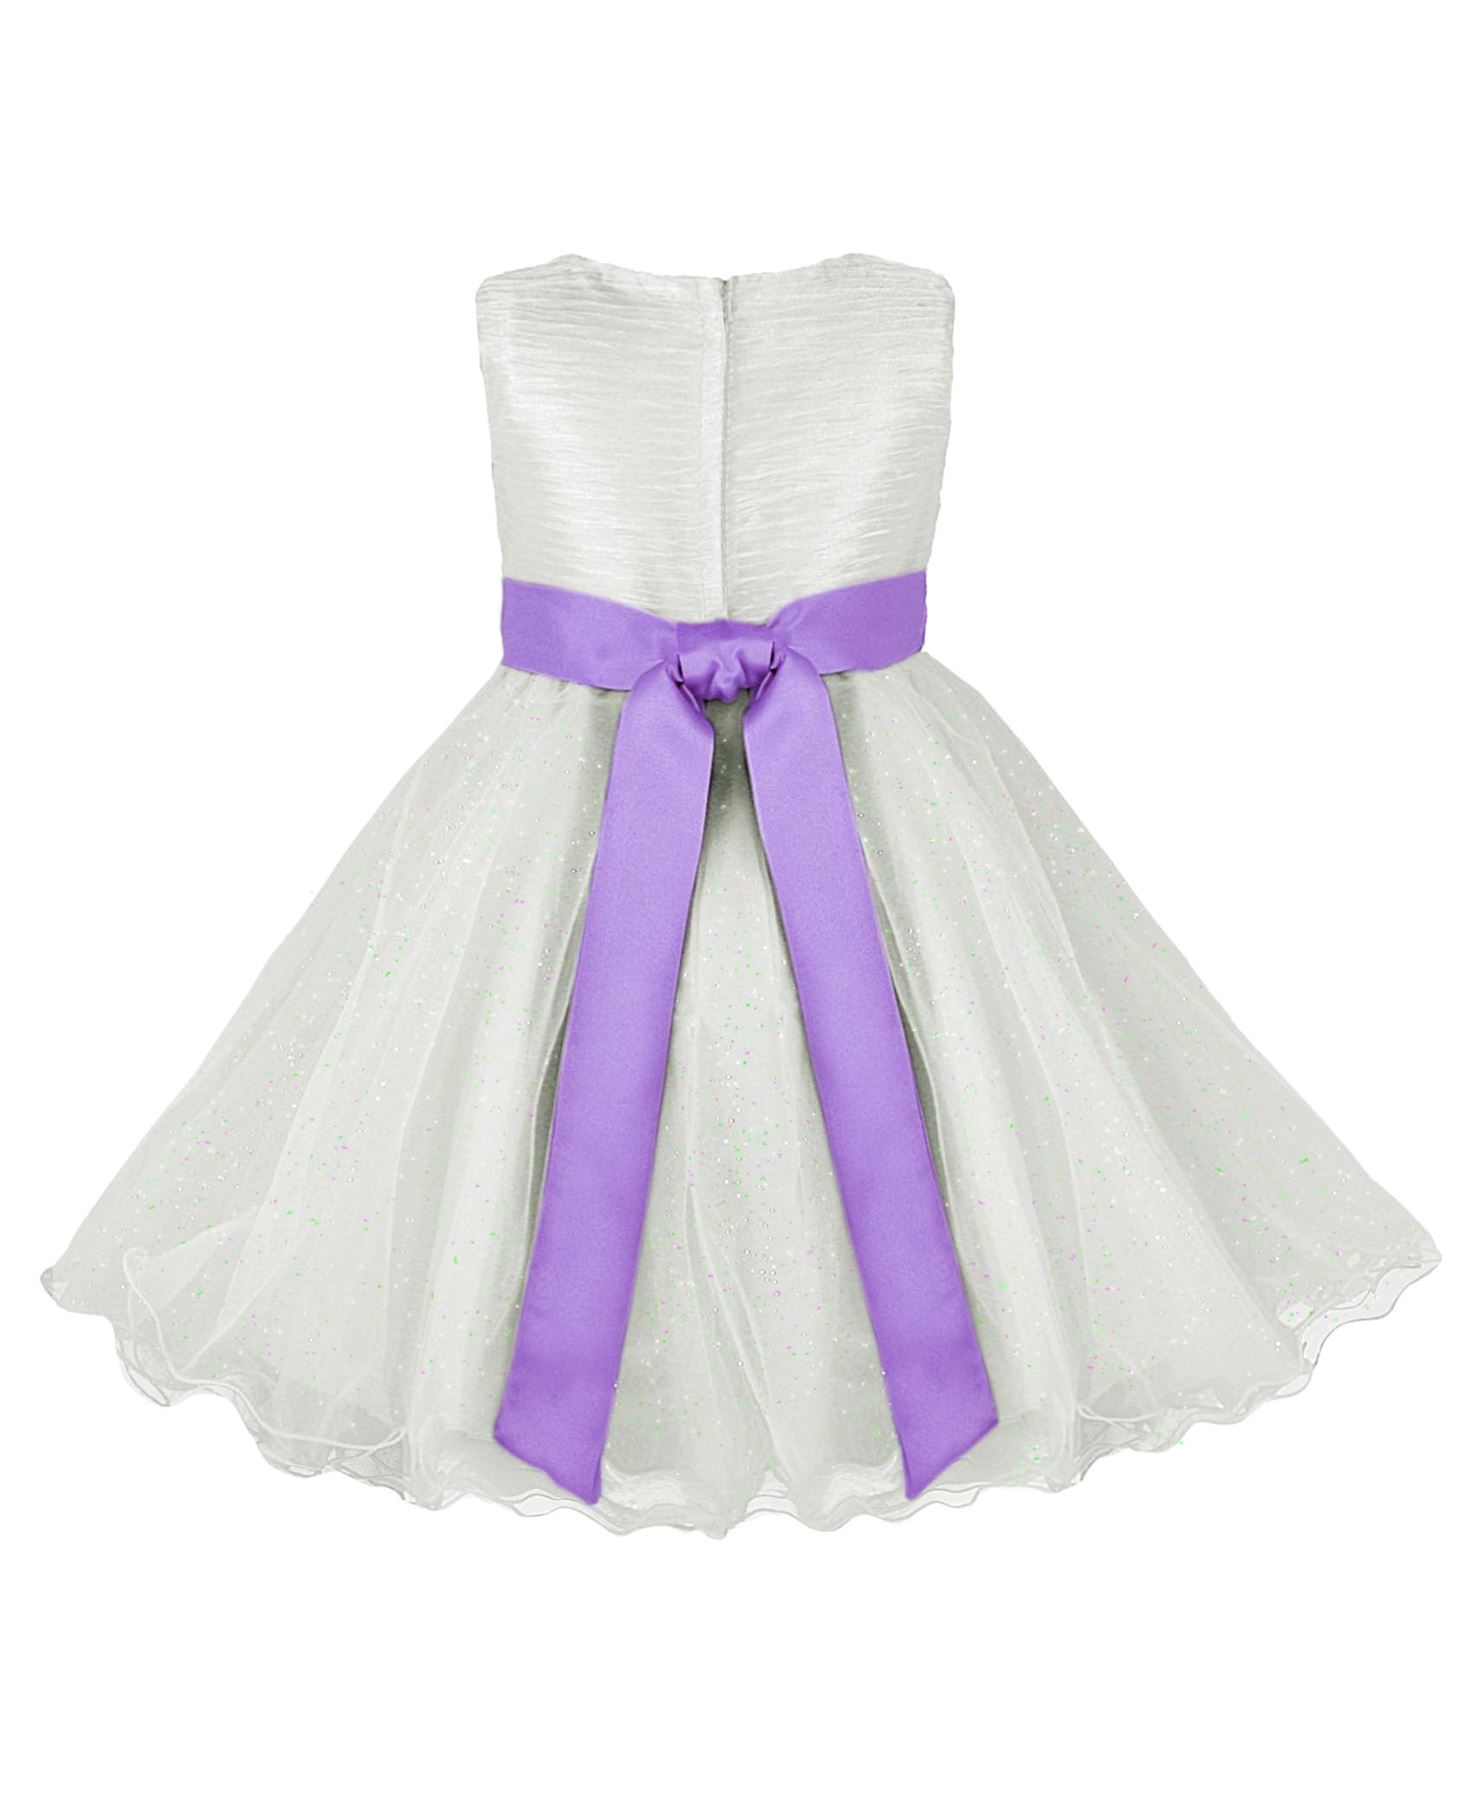 GIRLS TULLE PARTY DRESS BOW DETAIL FLOWER GIRL WEDDING PAGEANT BRIDESMAID 2 1